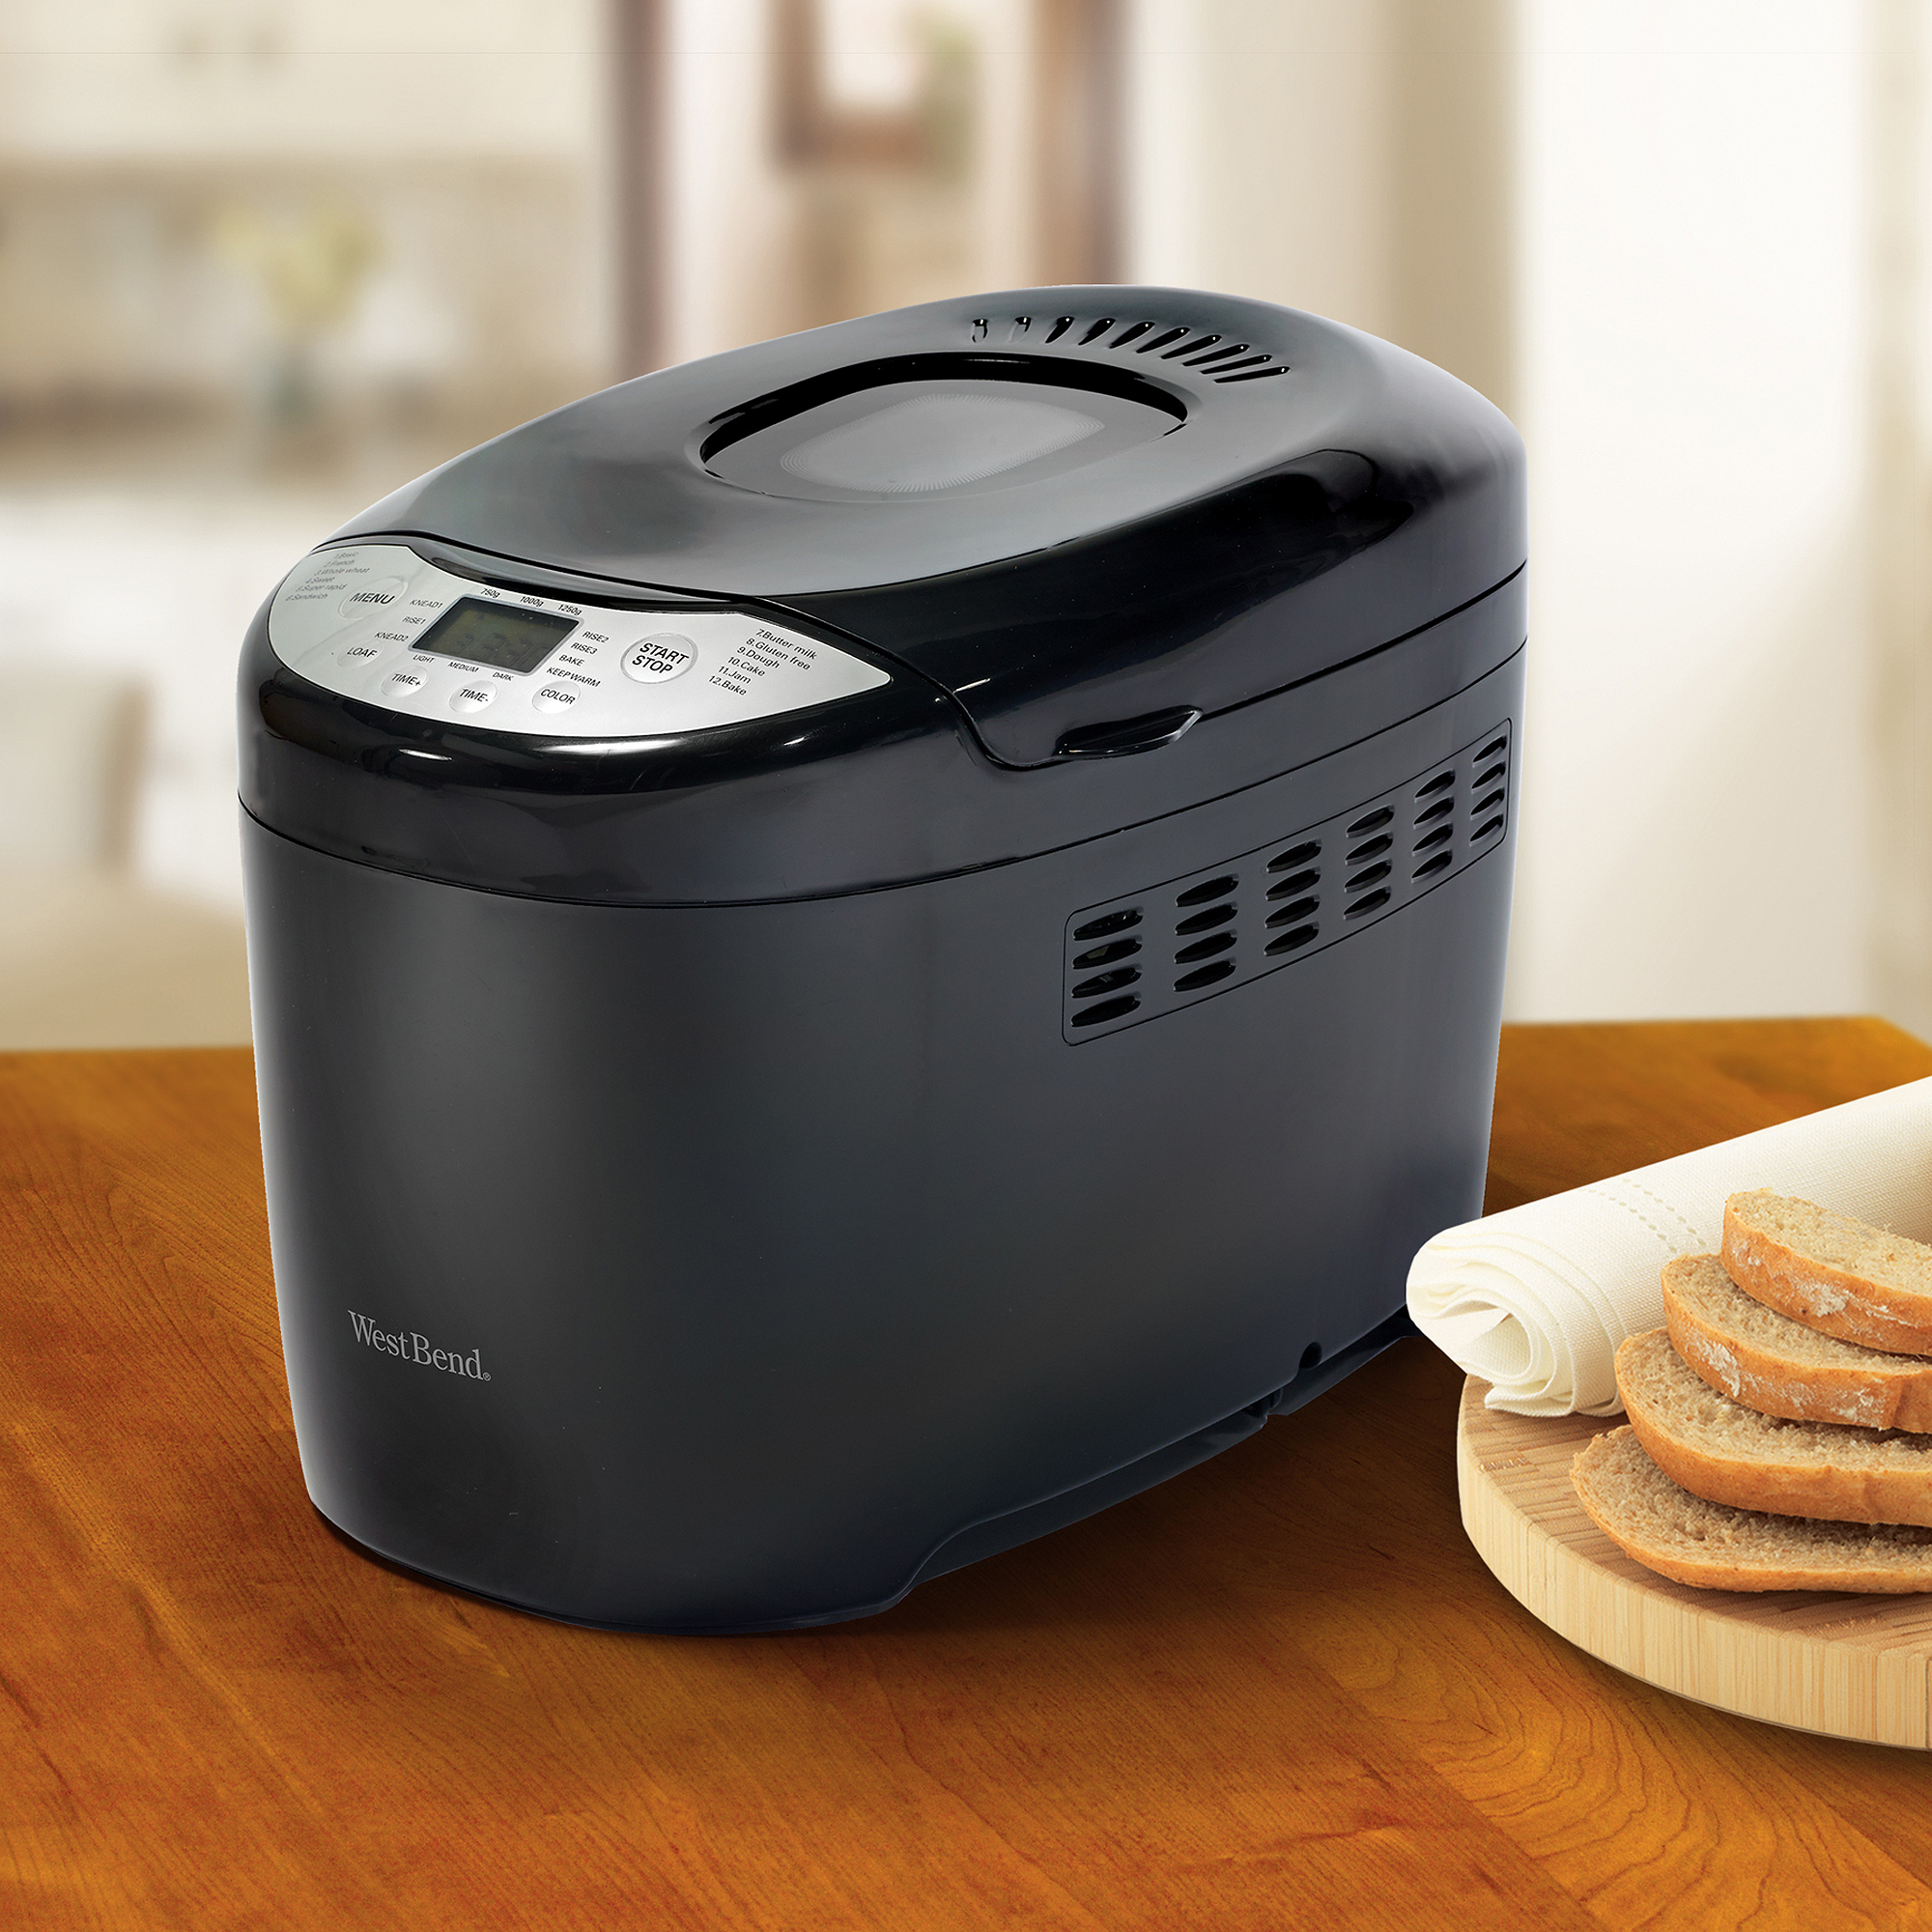 West Bend 2.5-lb Loaf Capacity Hi-Rise Breadmaker